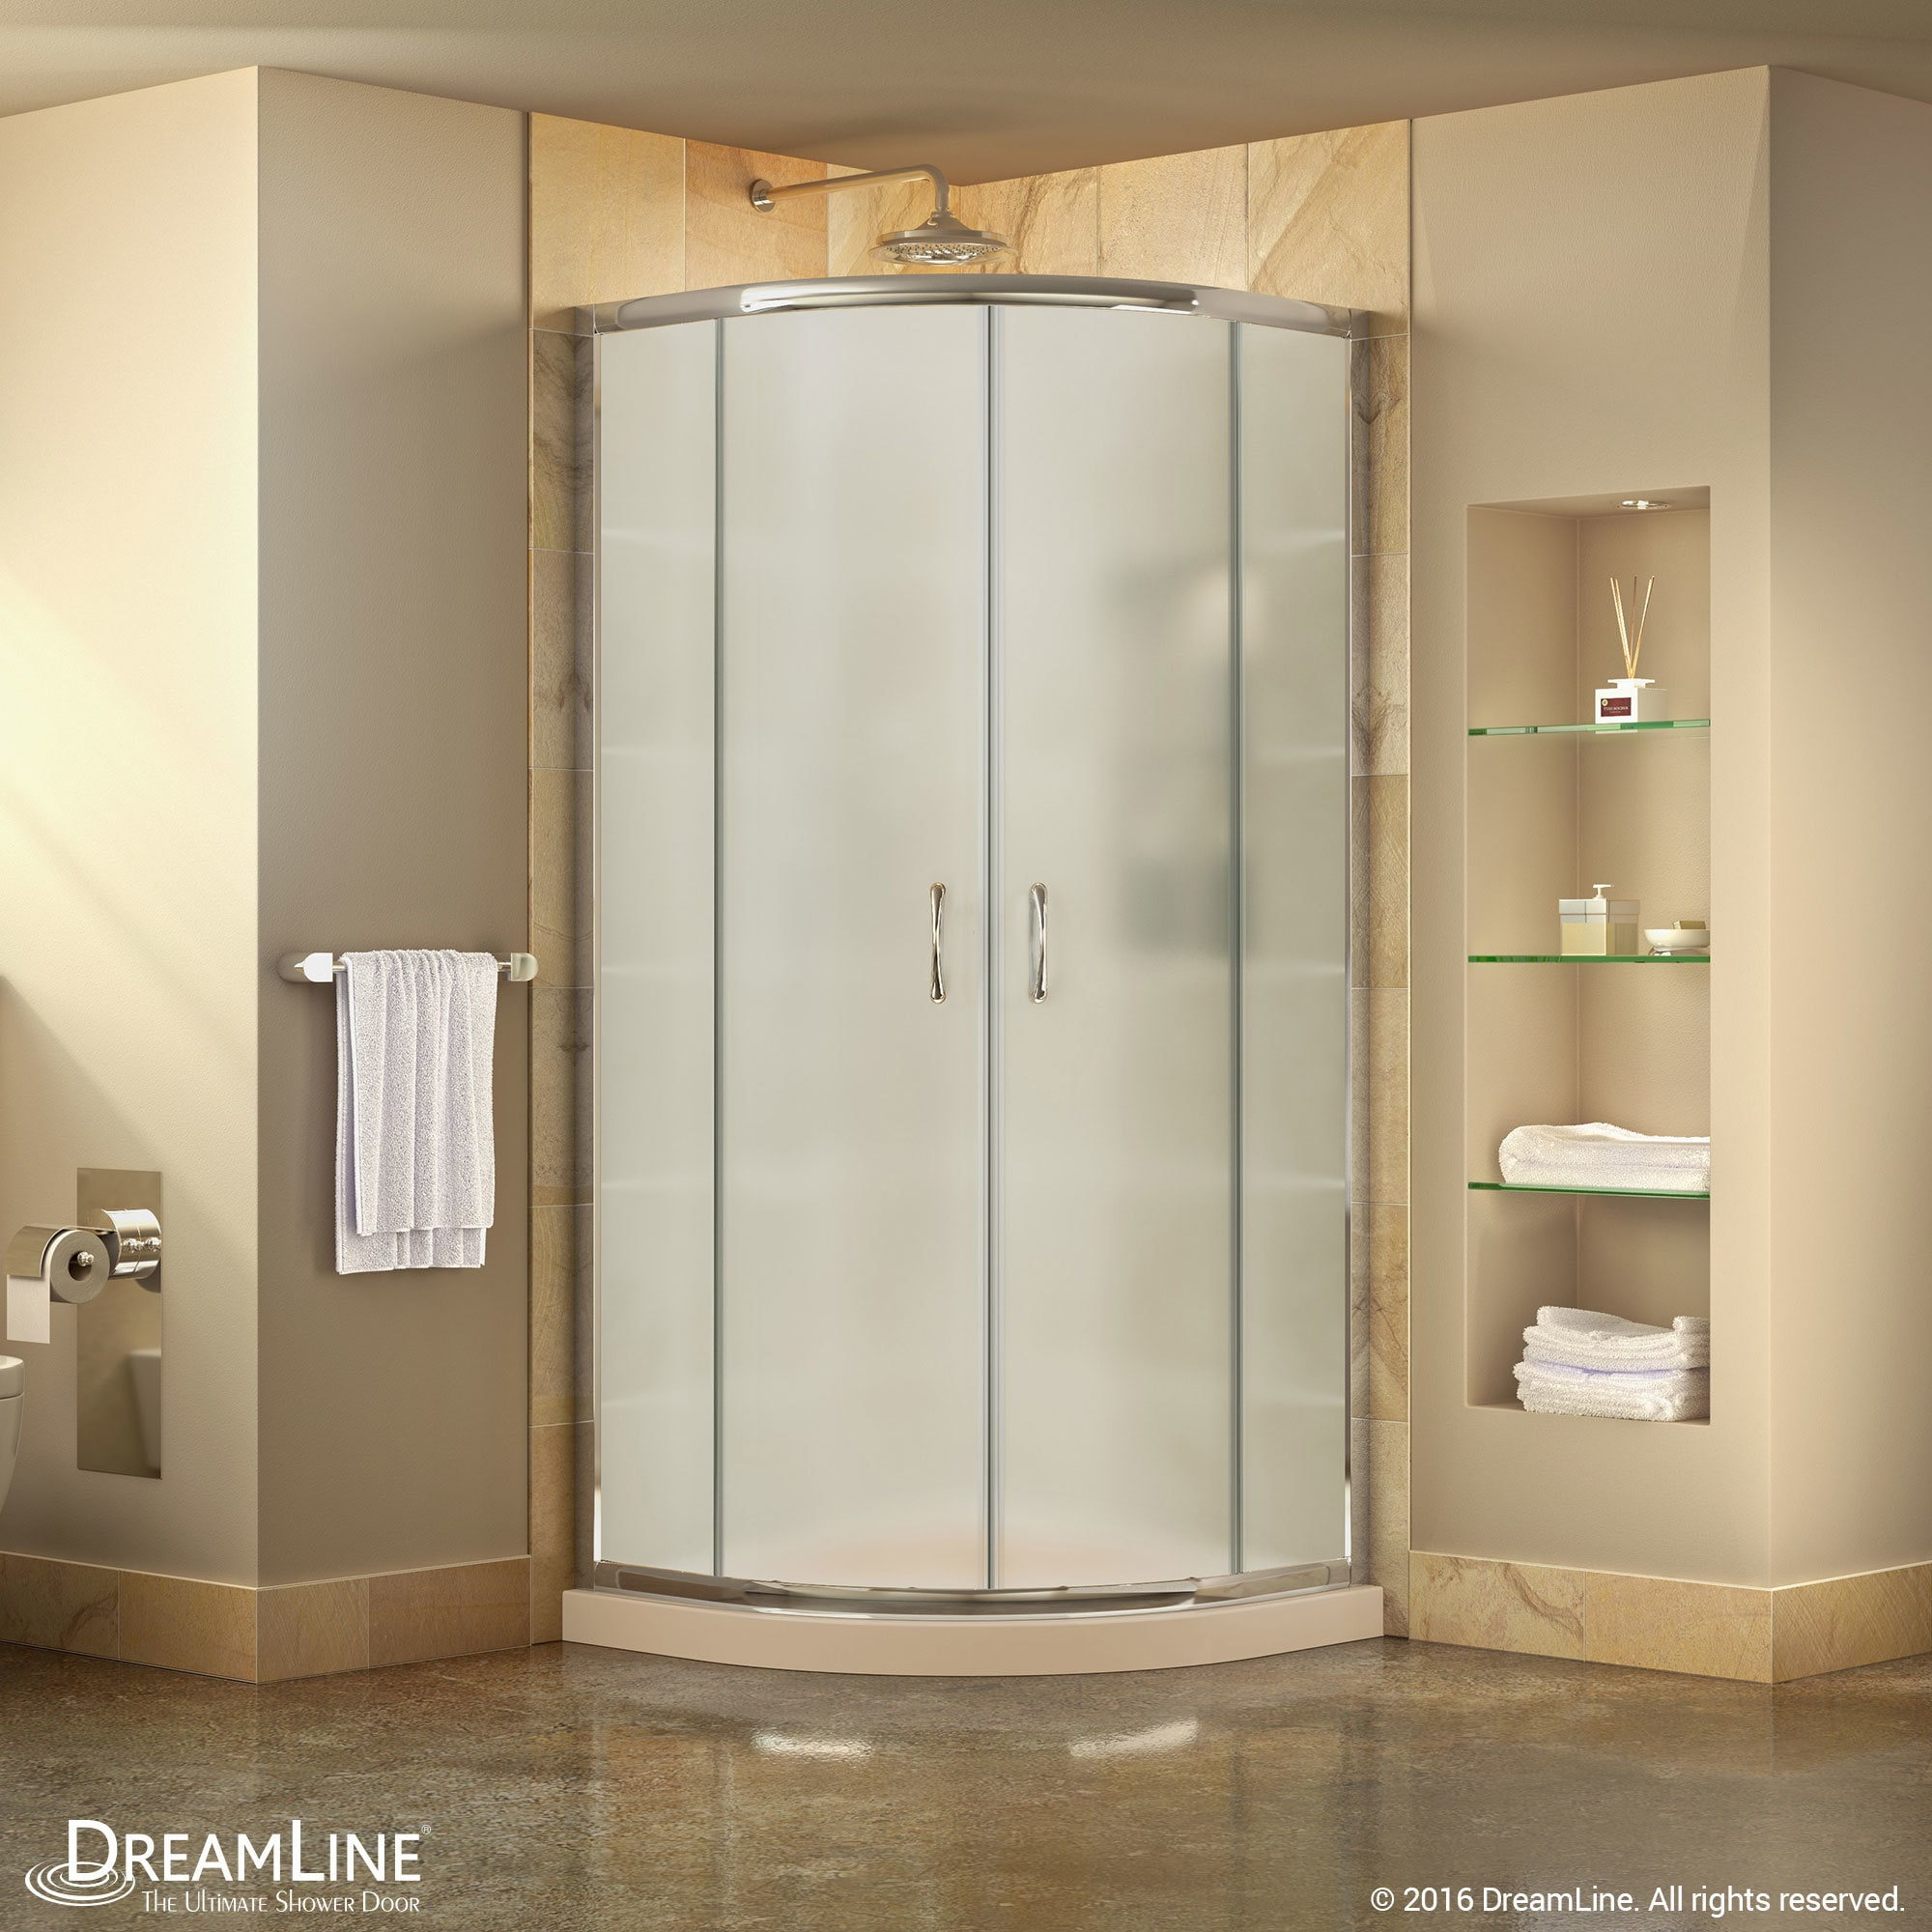 Dreamline Prime 36 In X 36 In X 74 3 4 In Corner Shower Enclosure And Shower Base Kit Frosted Glass